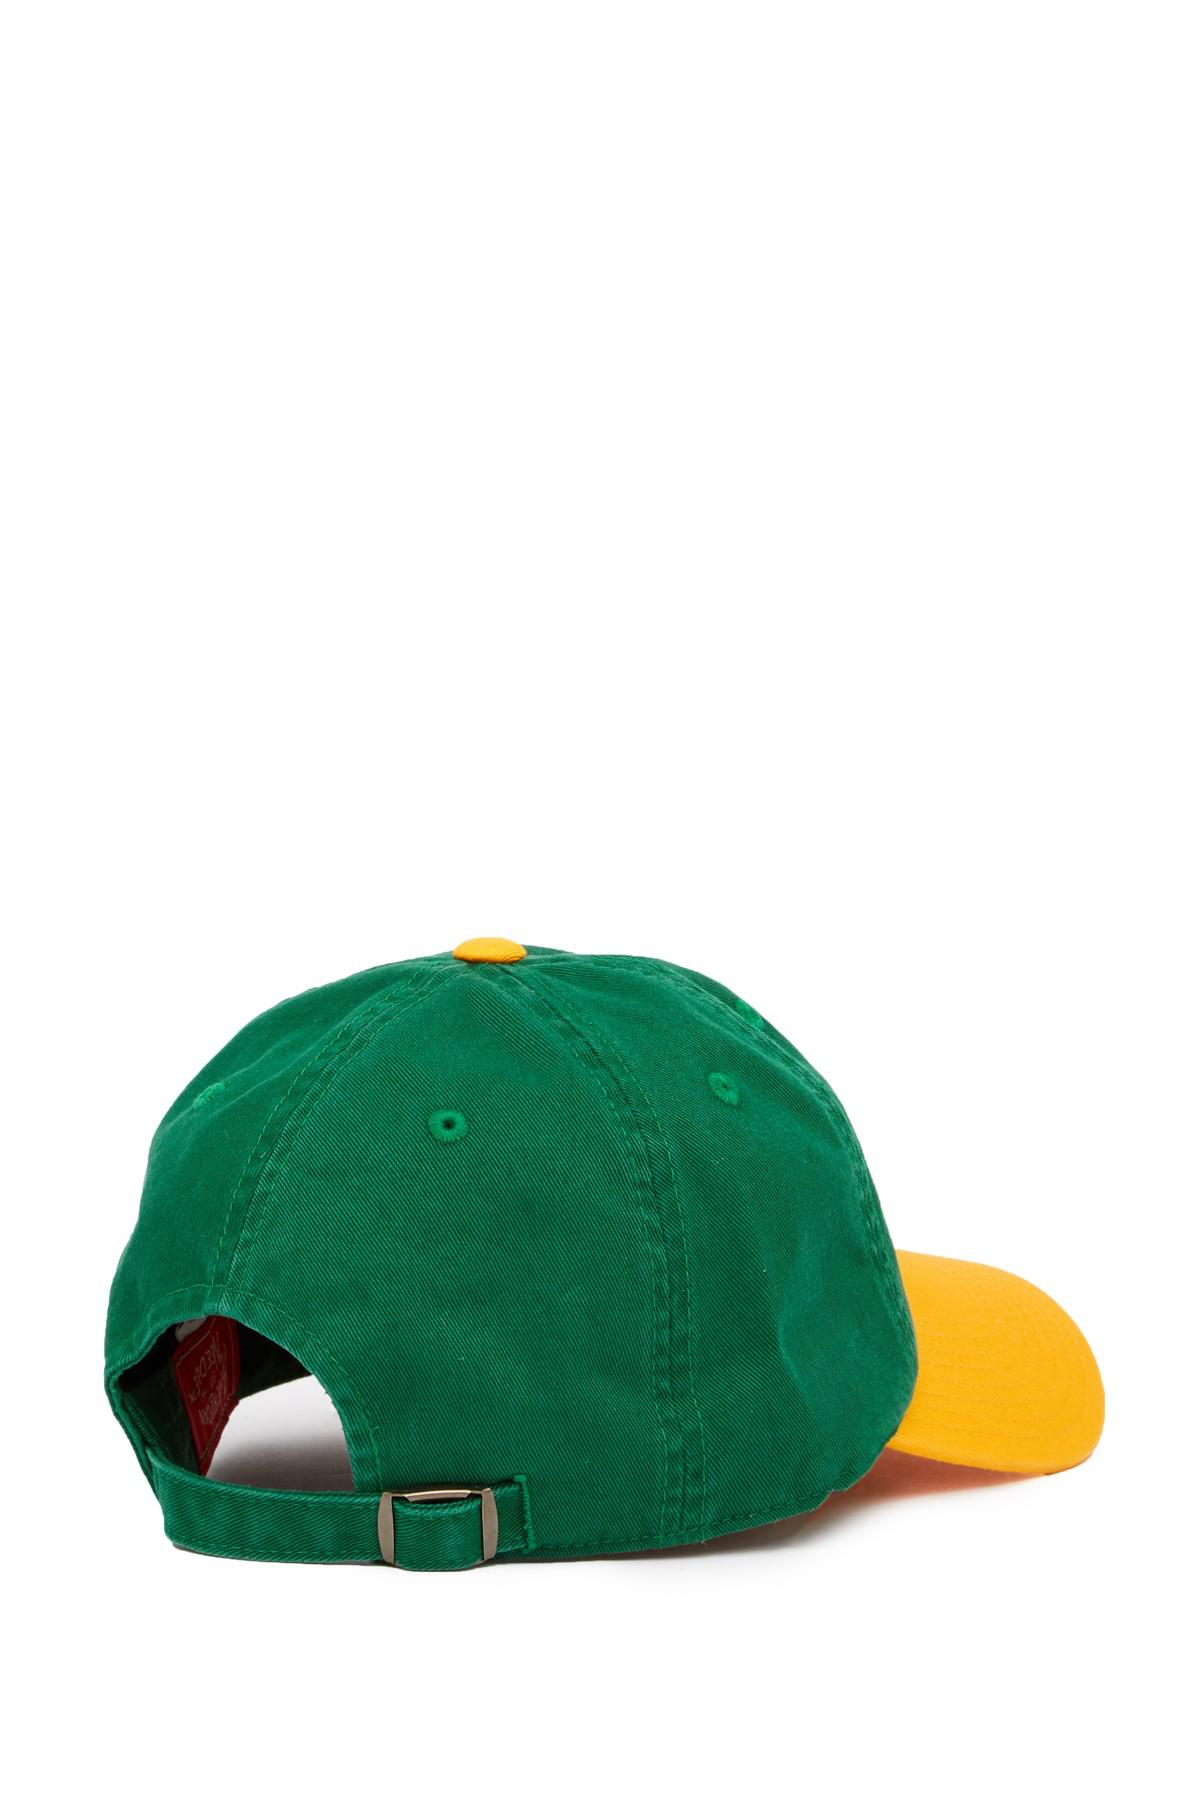 wholesale online super cute on feet at American Needle Cotton Oakland Athletics Baseball Cap in Green for ...